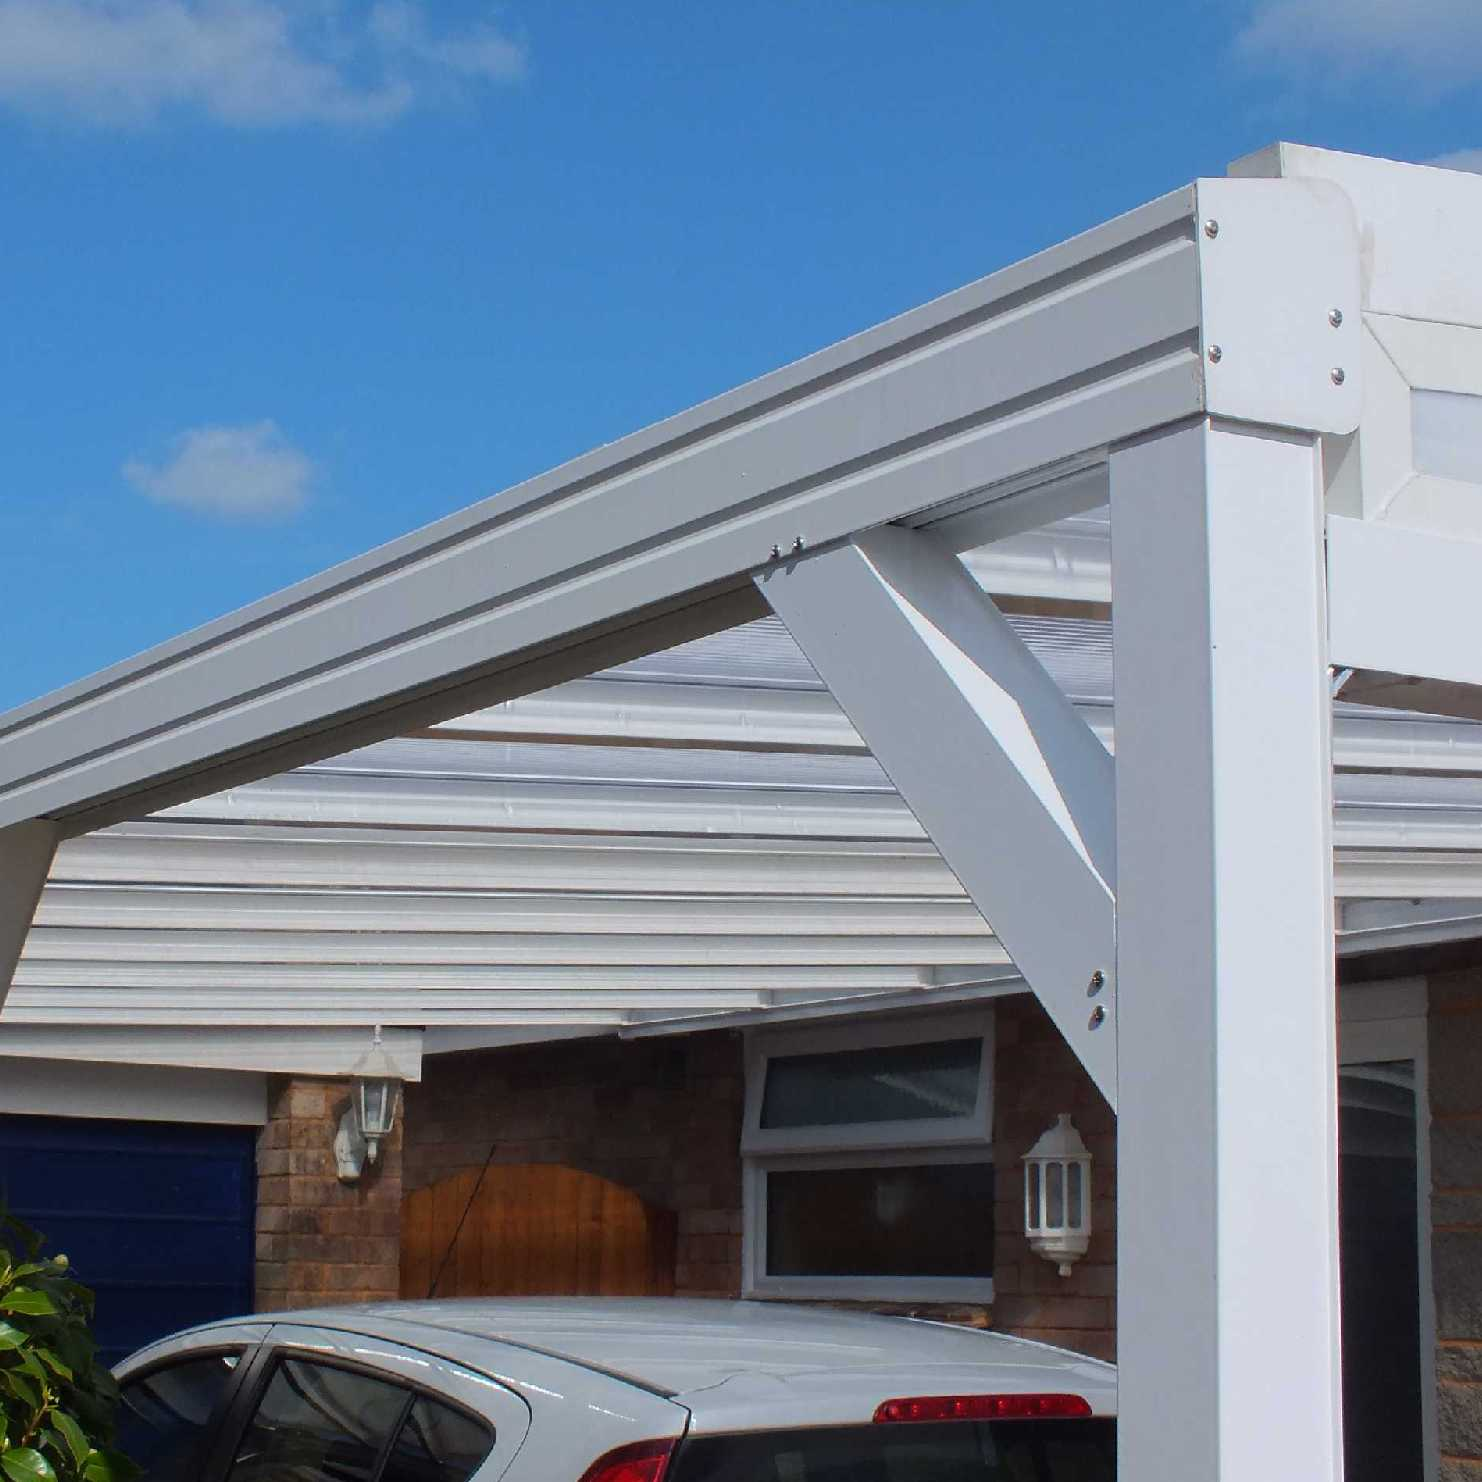 Great deals on Omega Smart White Lean-To Canopy with 16mm Polycarbonate Glazing - 6.3m (W) x 2.5m (P), (4) Supporting Posts